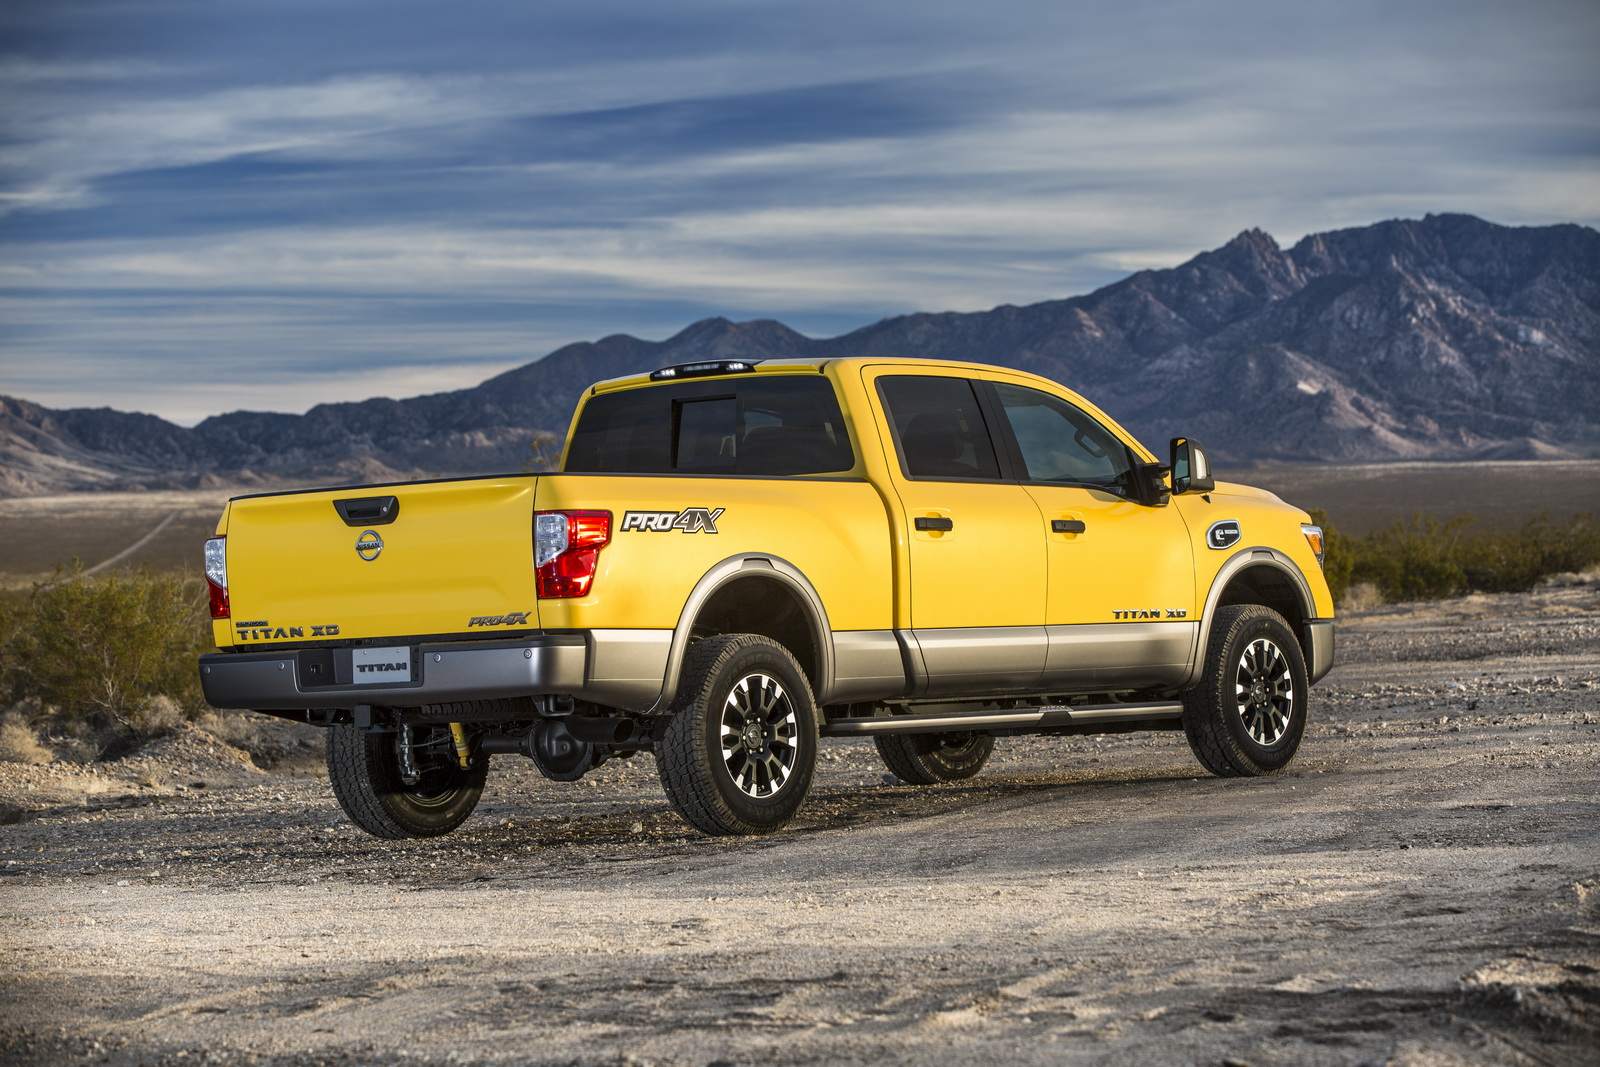 2016 nissan titan xd priced from 40 290 35 pics. Black Bedroom Furniture Sets. Home Design Ideas